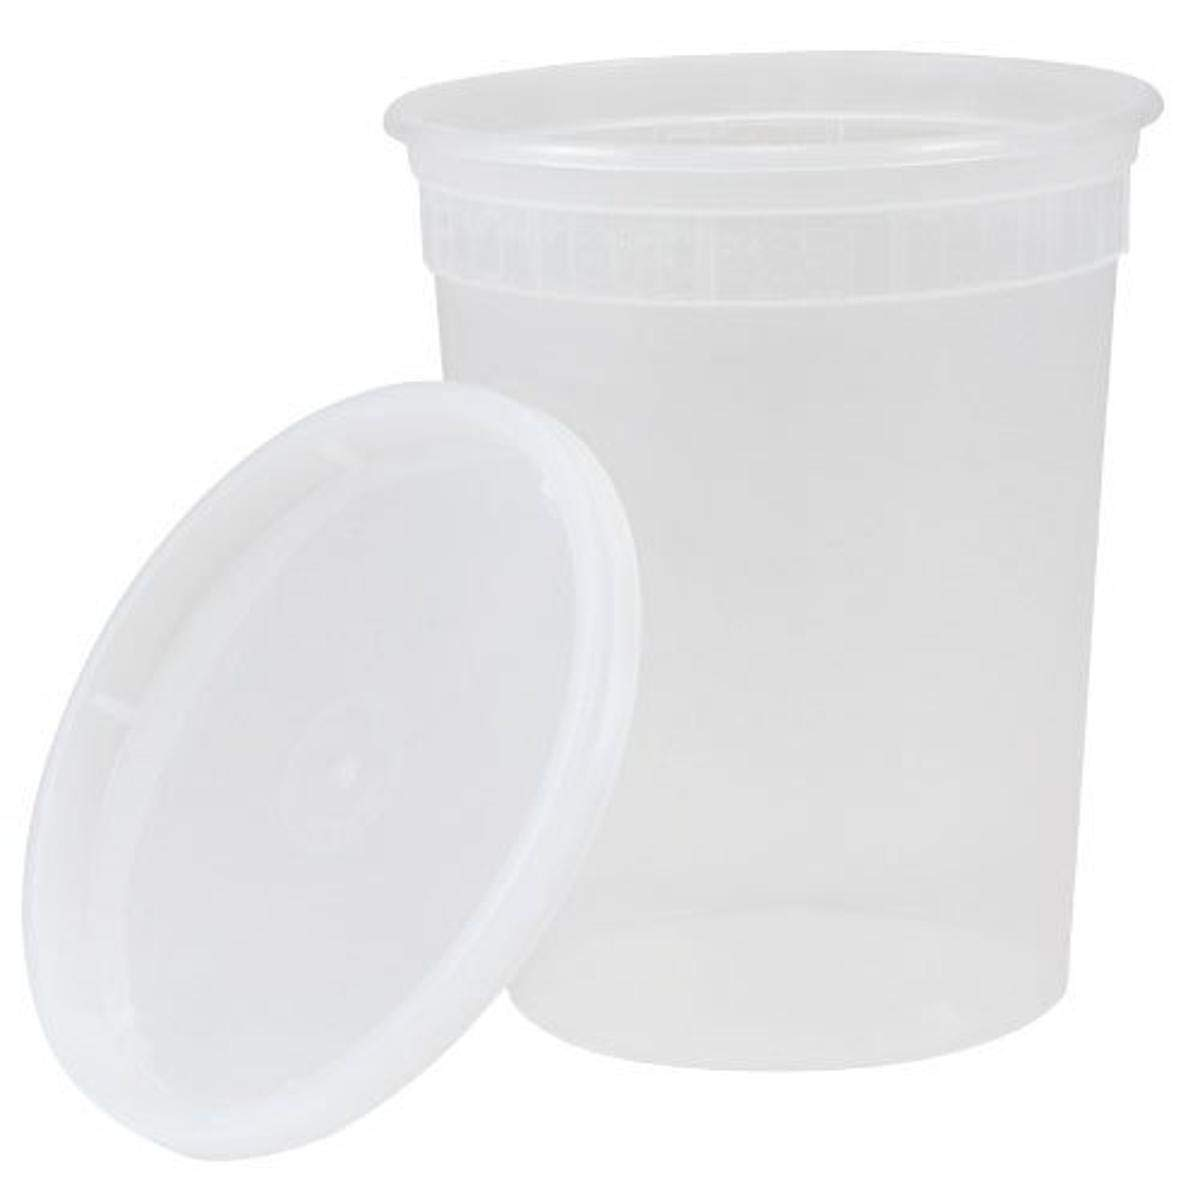 KZ Industrial 05003 Plastic Deli Container with Lid, 32 oz. (Pack of 240)